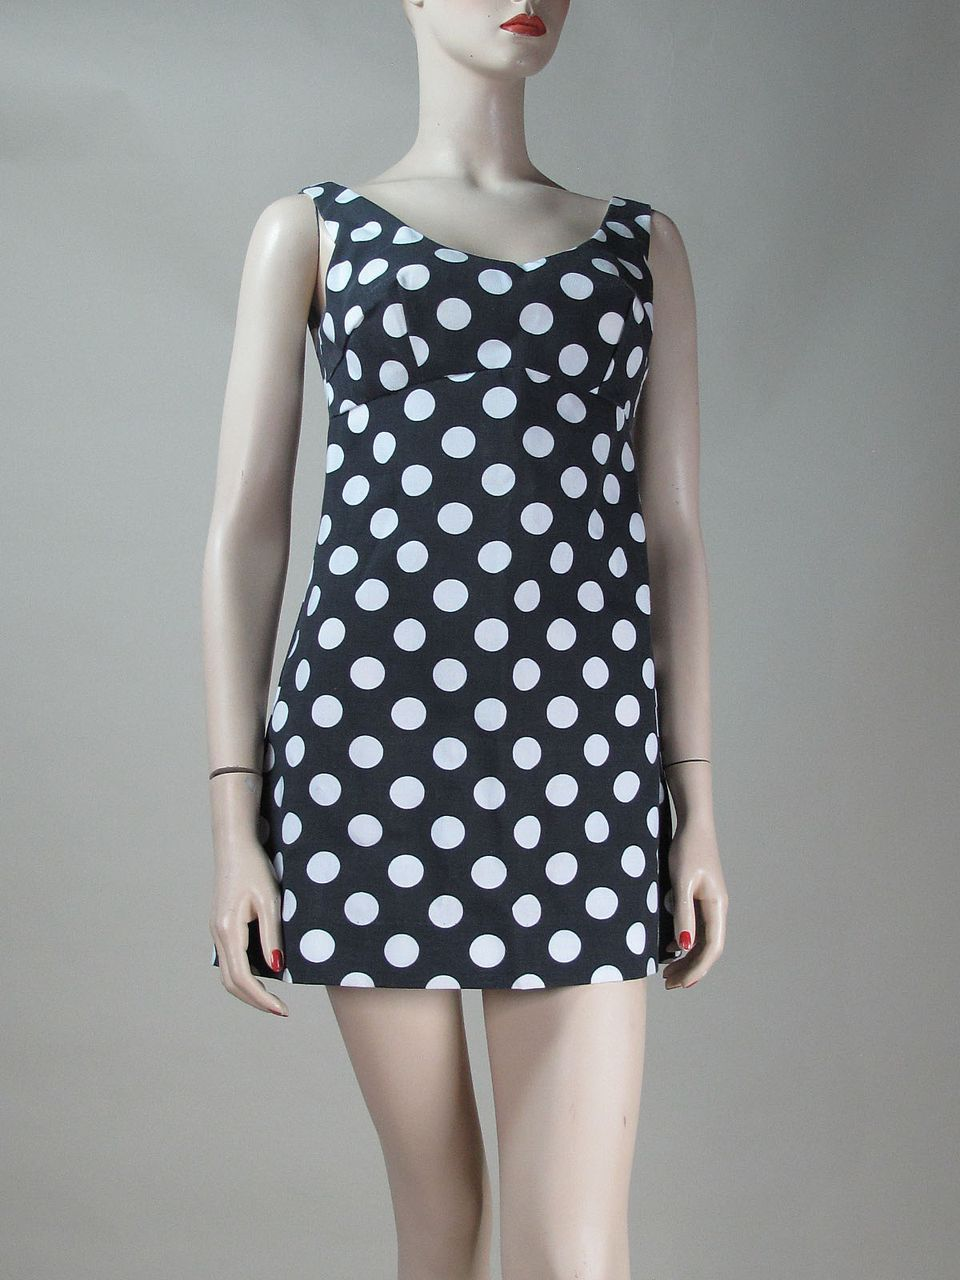 dress with built in bra canada